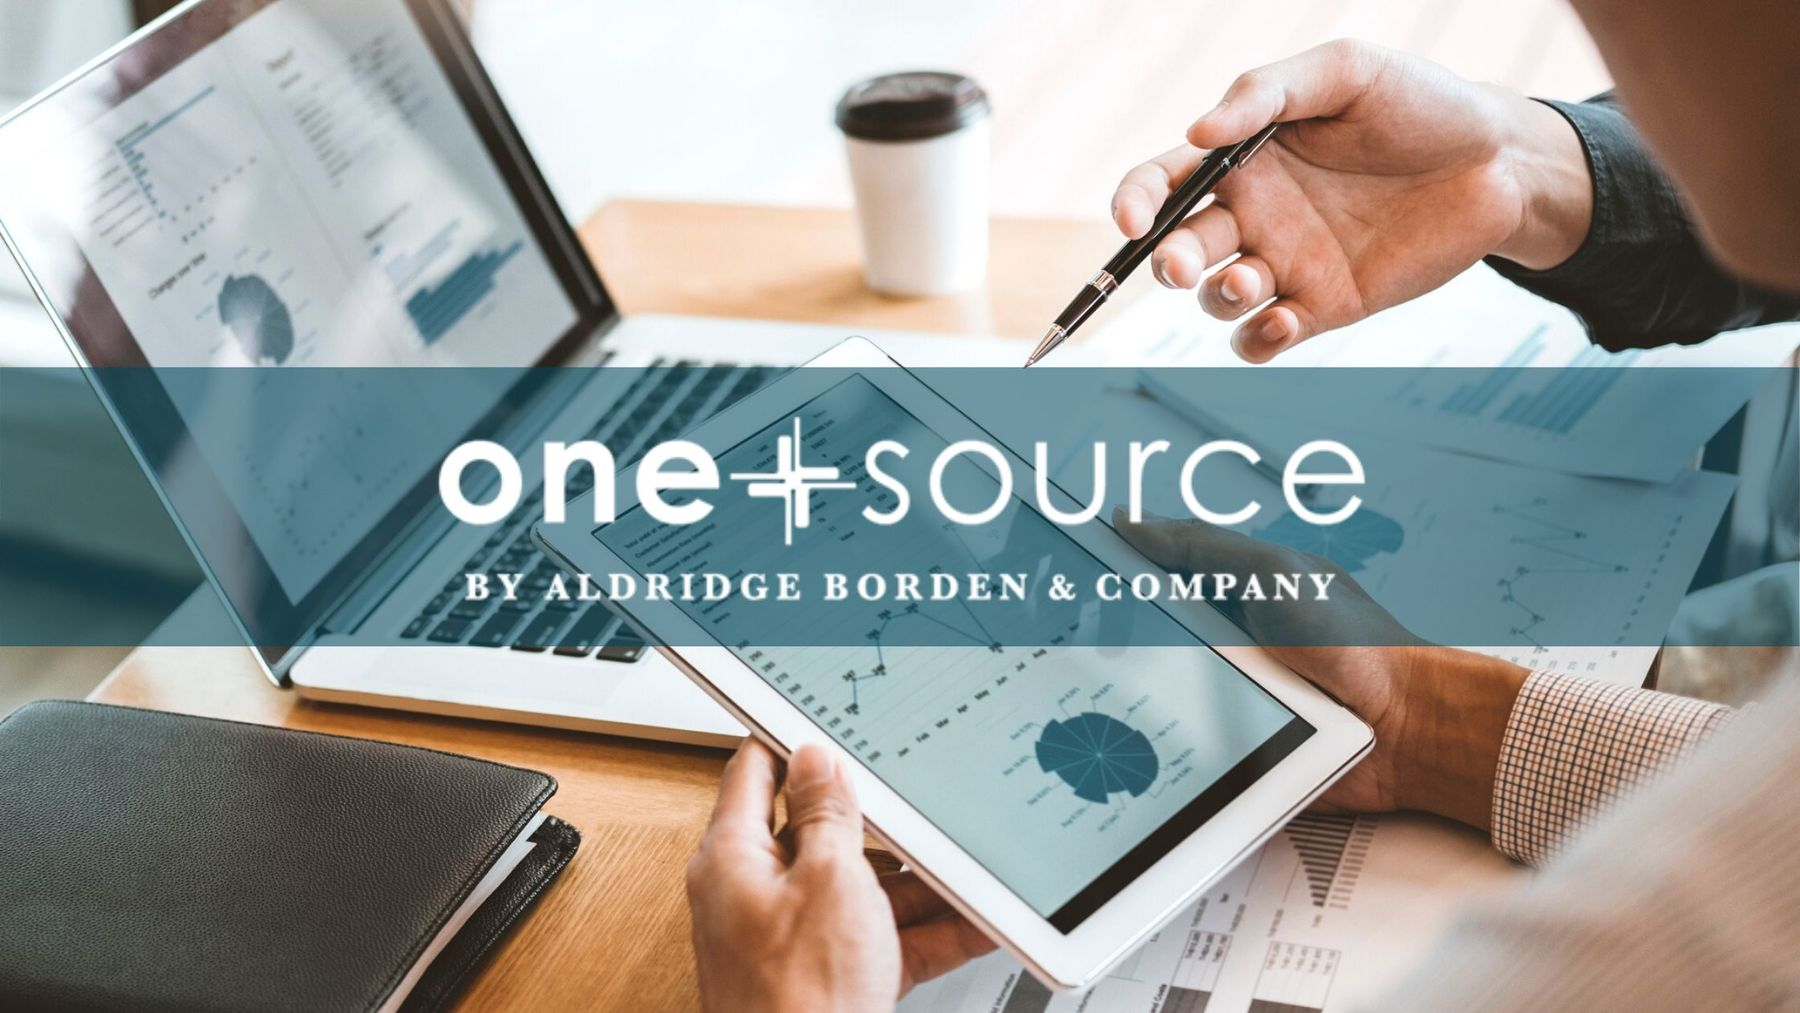 Onesource - By Aldridge Borden & Company